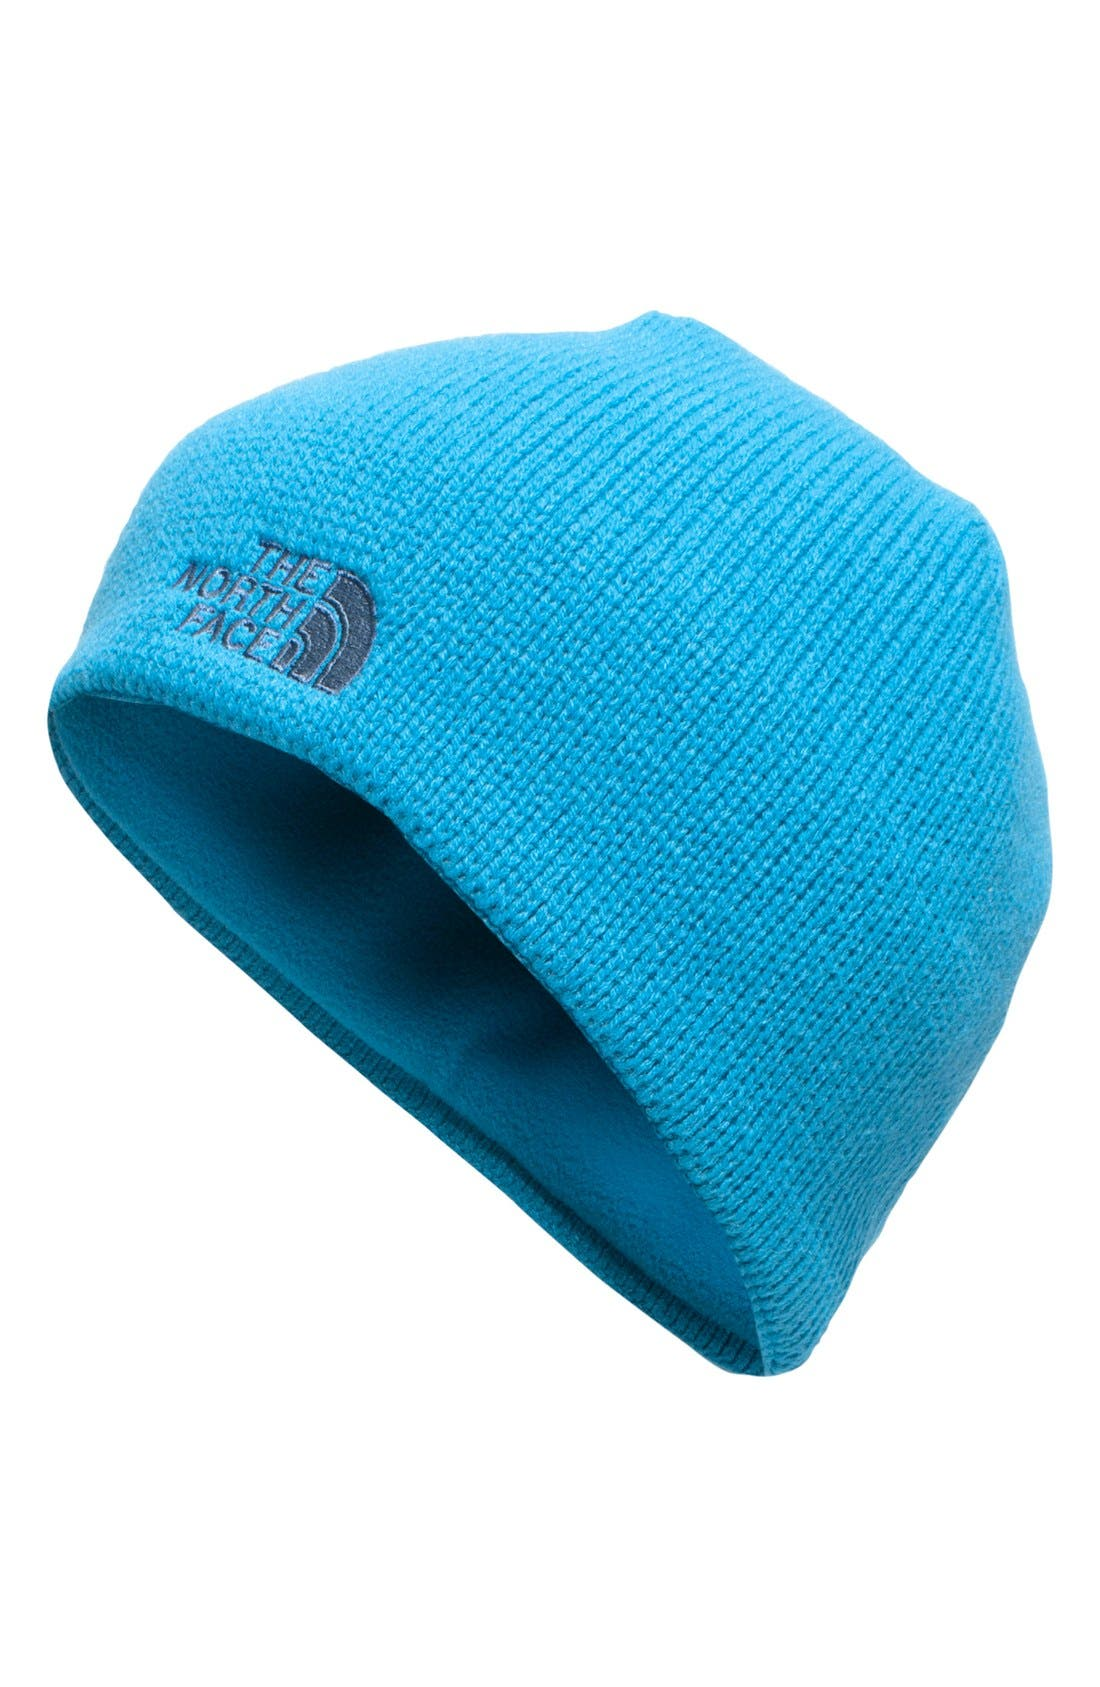 'Bones' Microfleece Beanie,                             Main thumbnail 11, color,